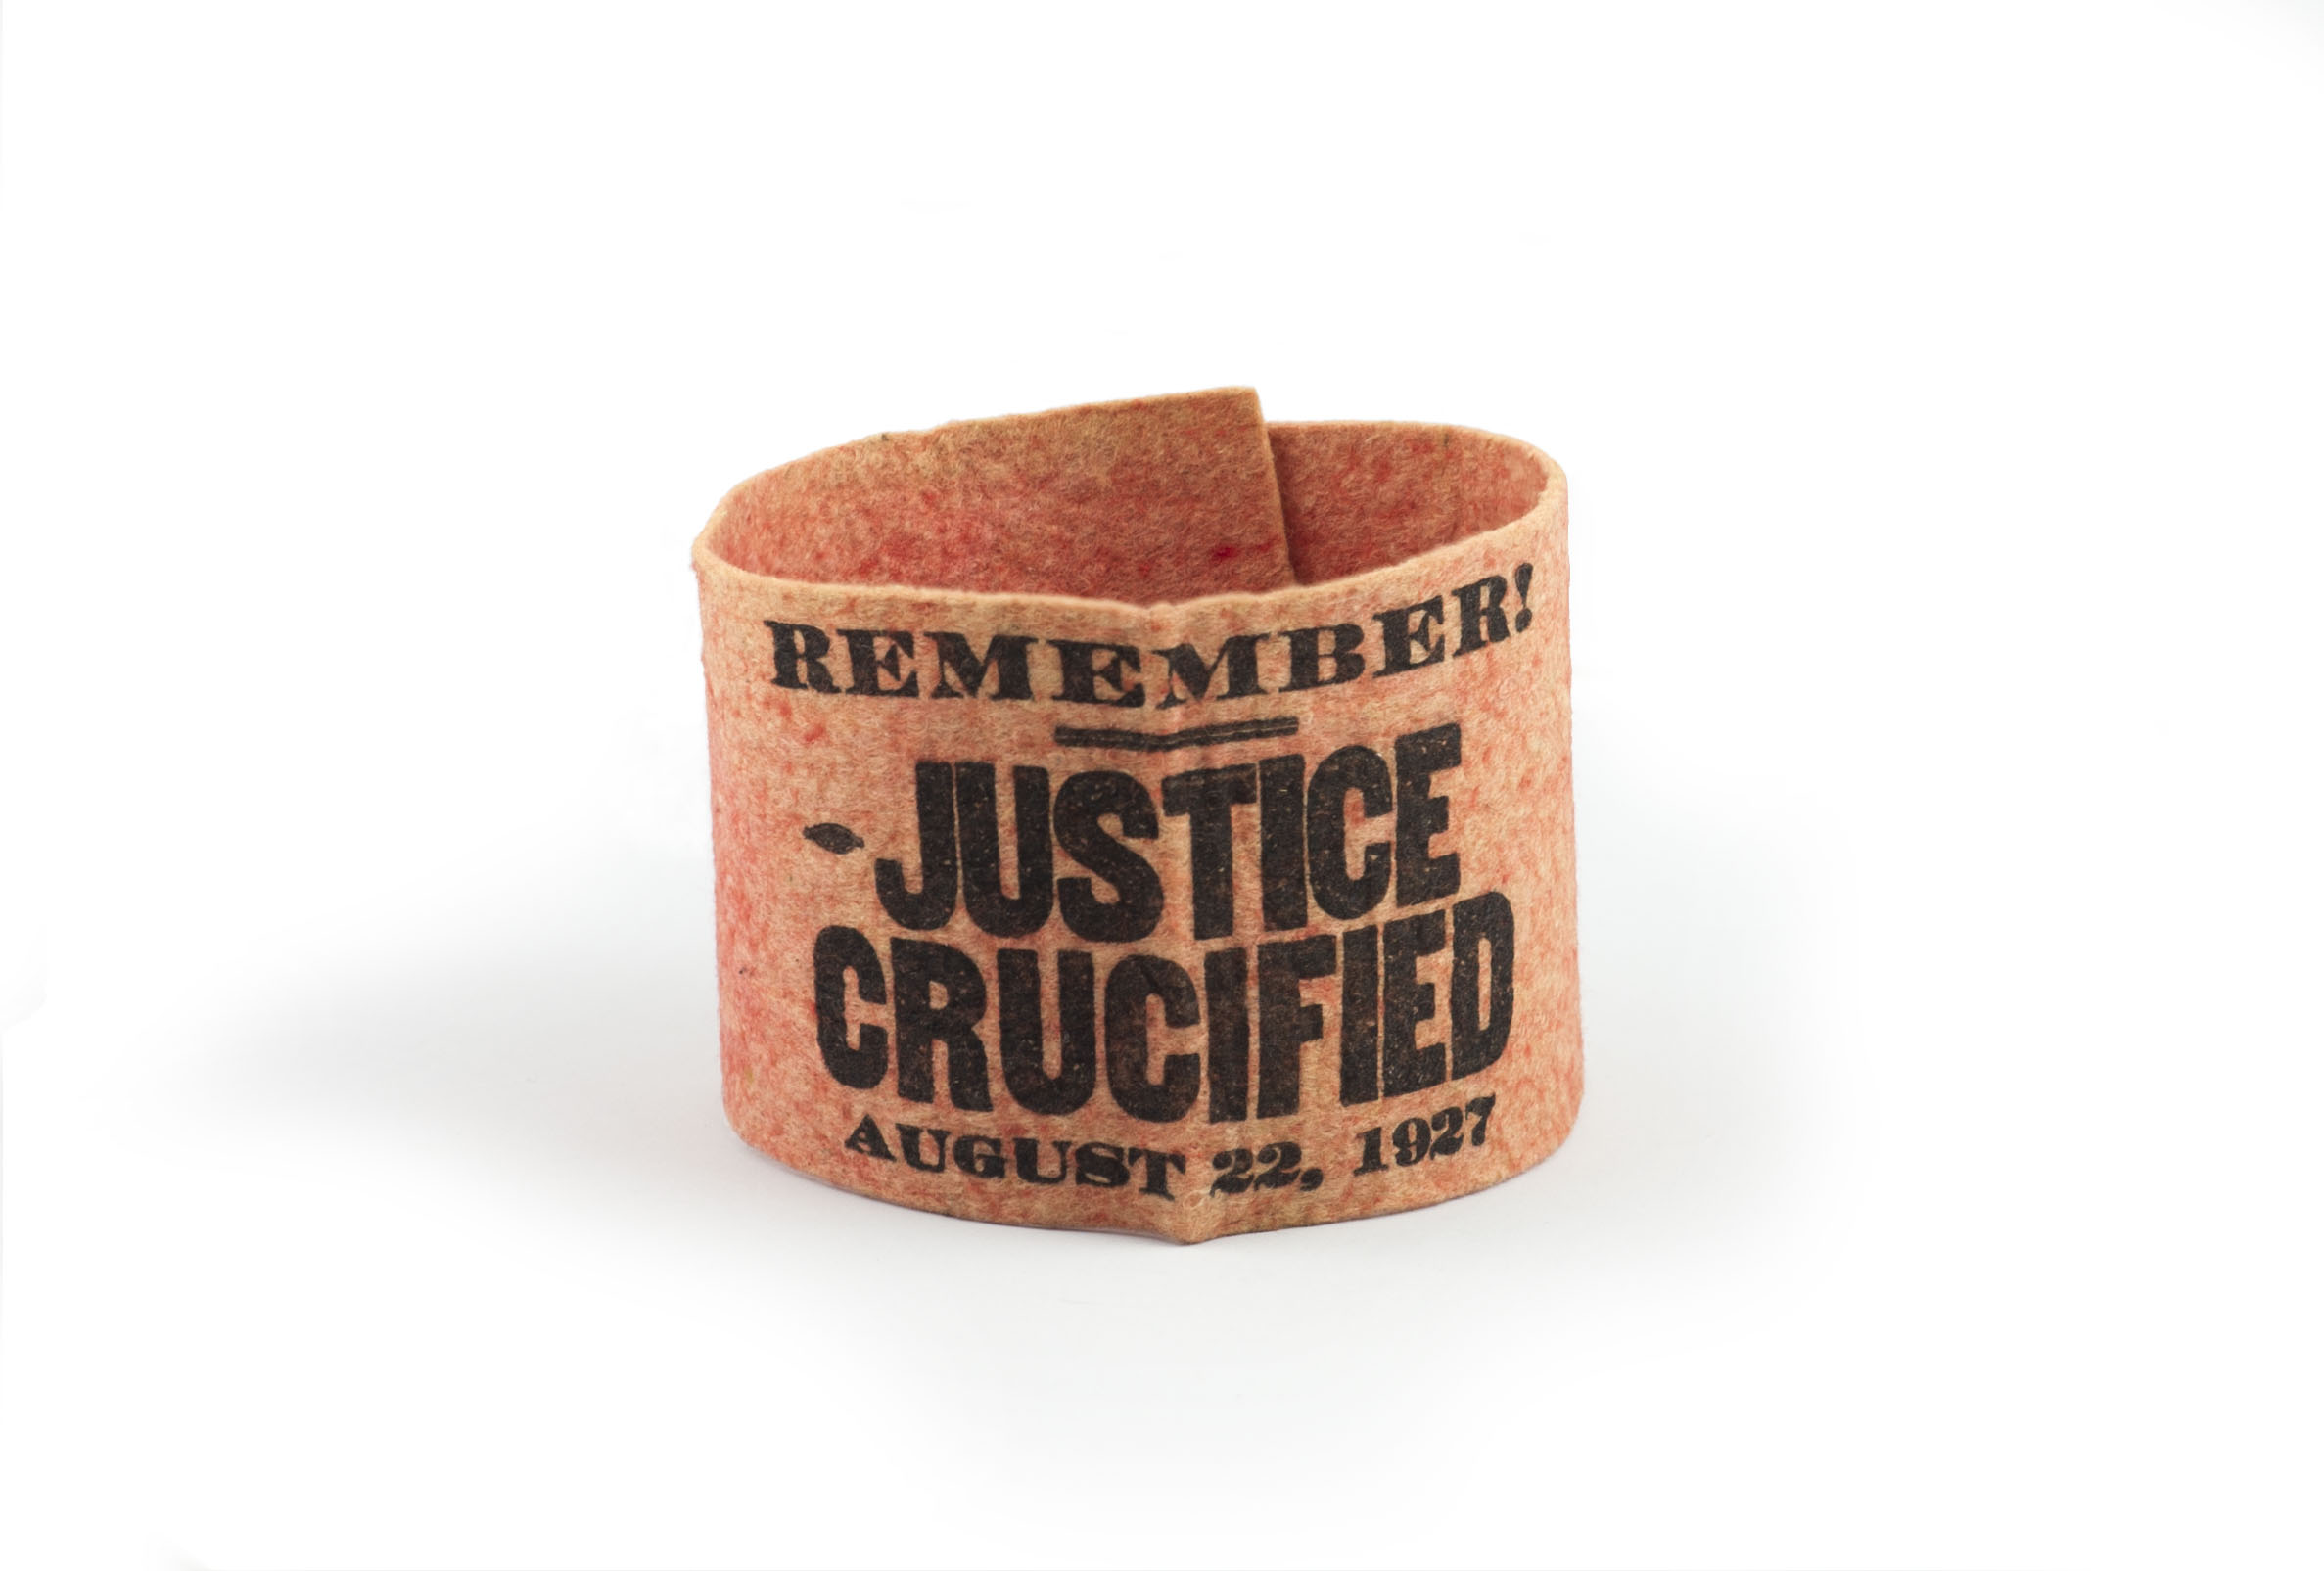 One of the red arm bands worn by mourners at Sacco and Vanzetti's funeral